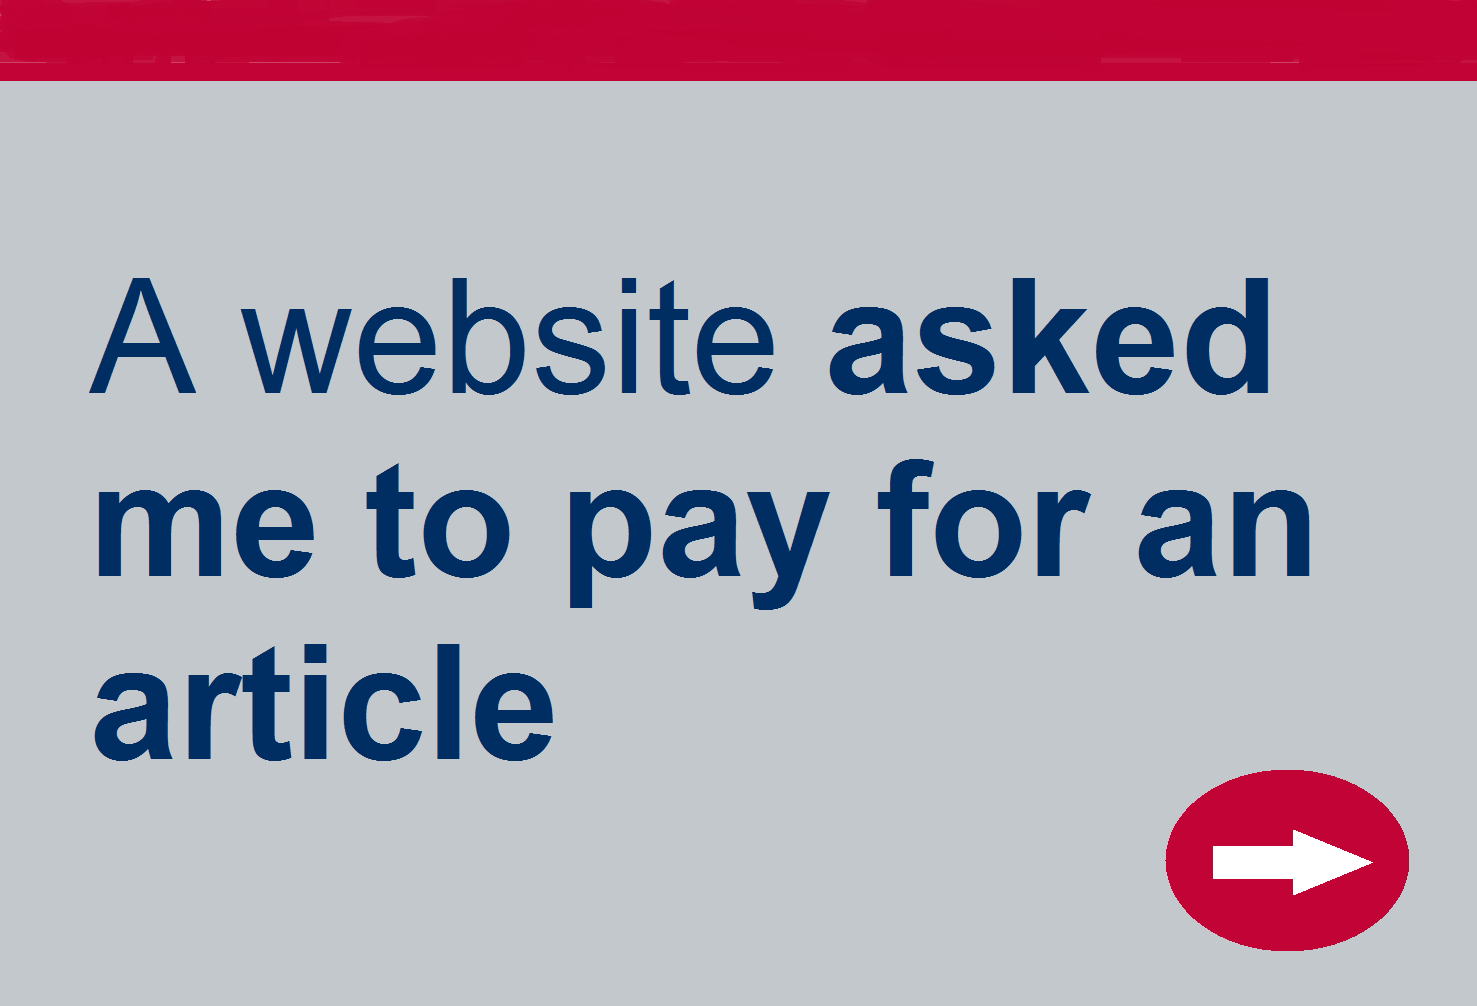 Website asked me to pay for an article